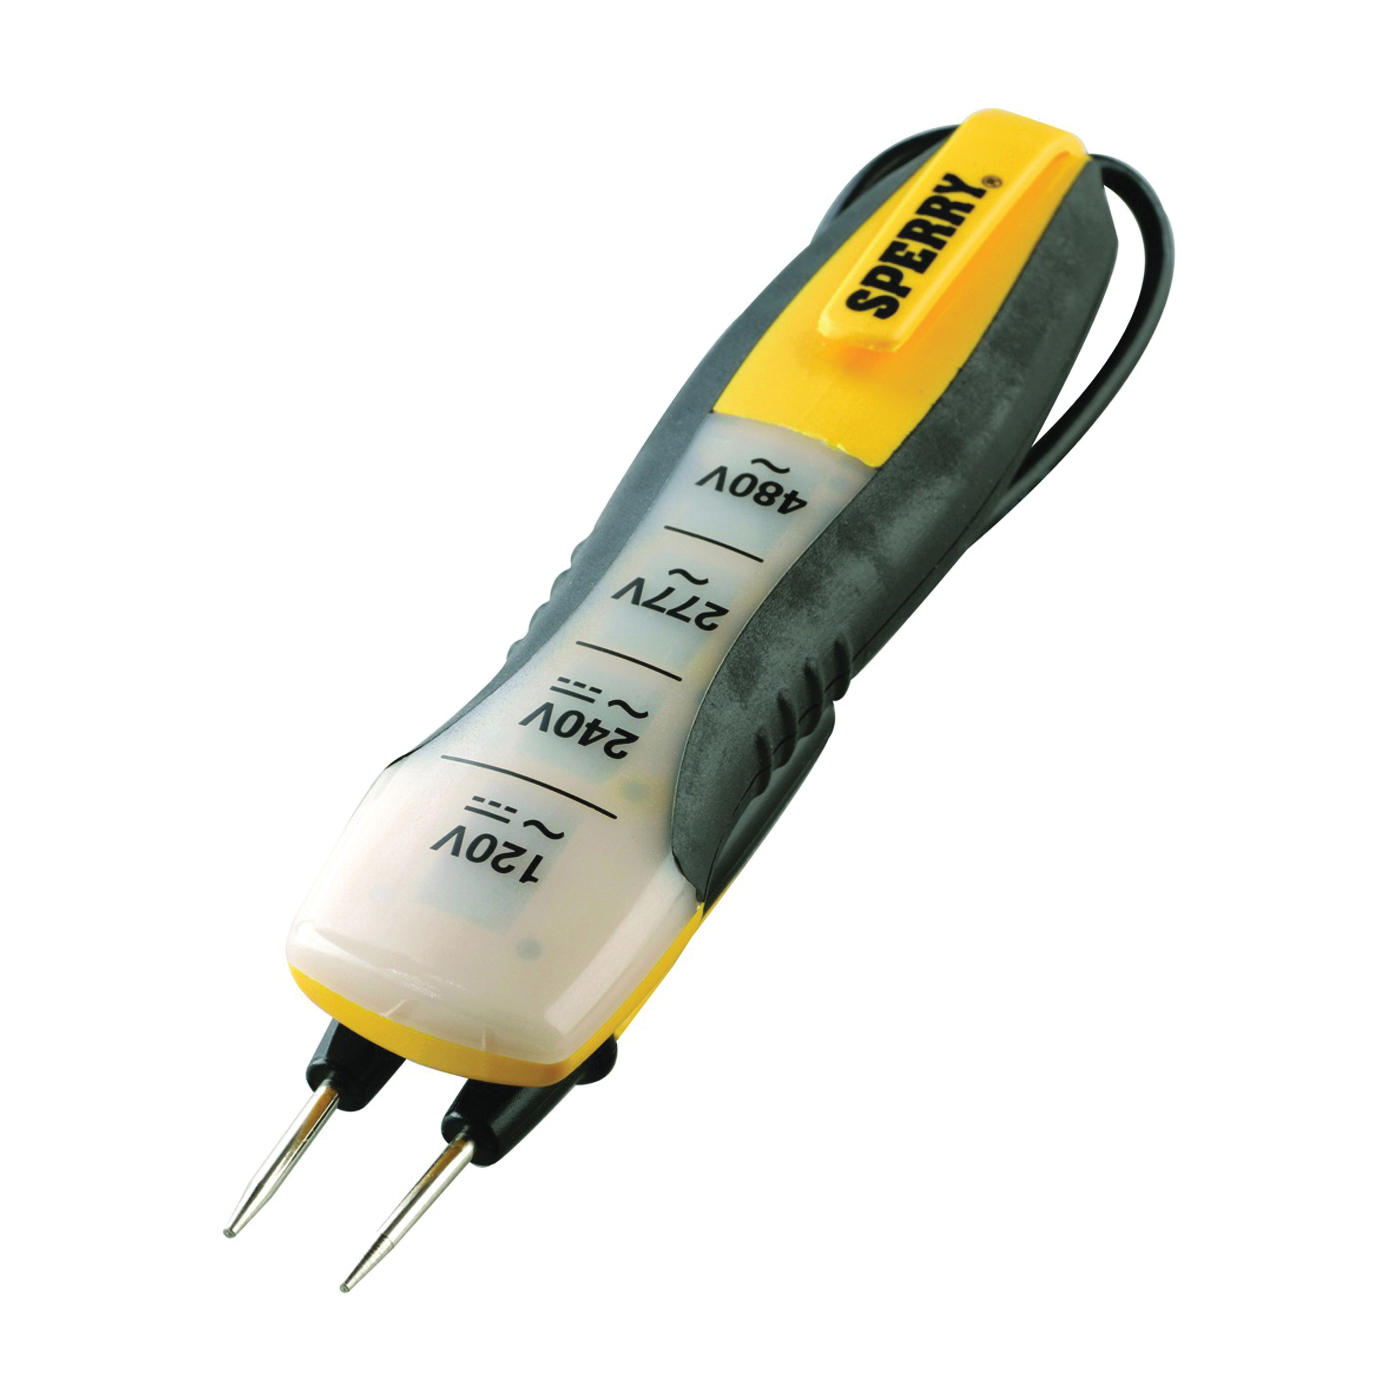 Picture of GB ET6204 Voltage Tester, 80 to 480 VAC/VDC, LED Display, Functions: Voltage, Yellow